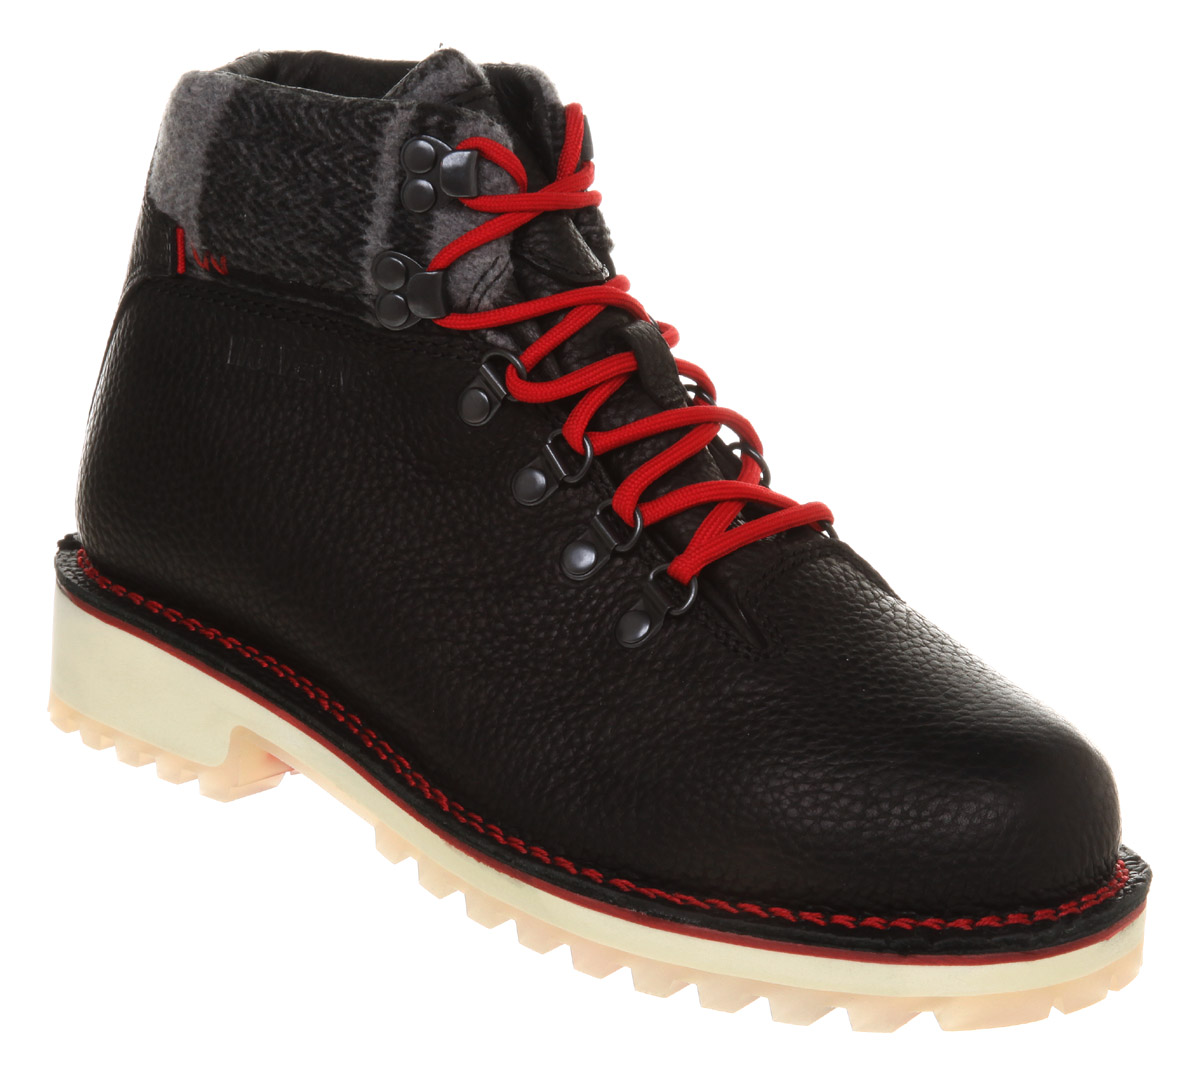 Mens-Wolverine-Tyrol-Hiker-Boot-Black-Leather-Boots